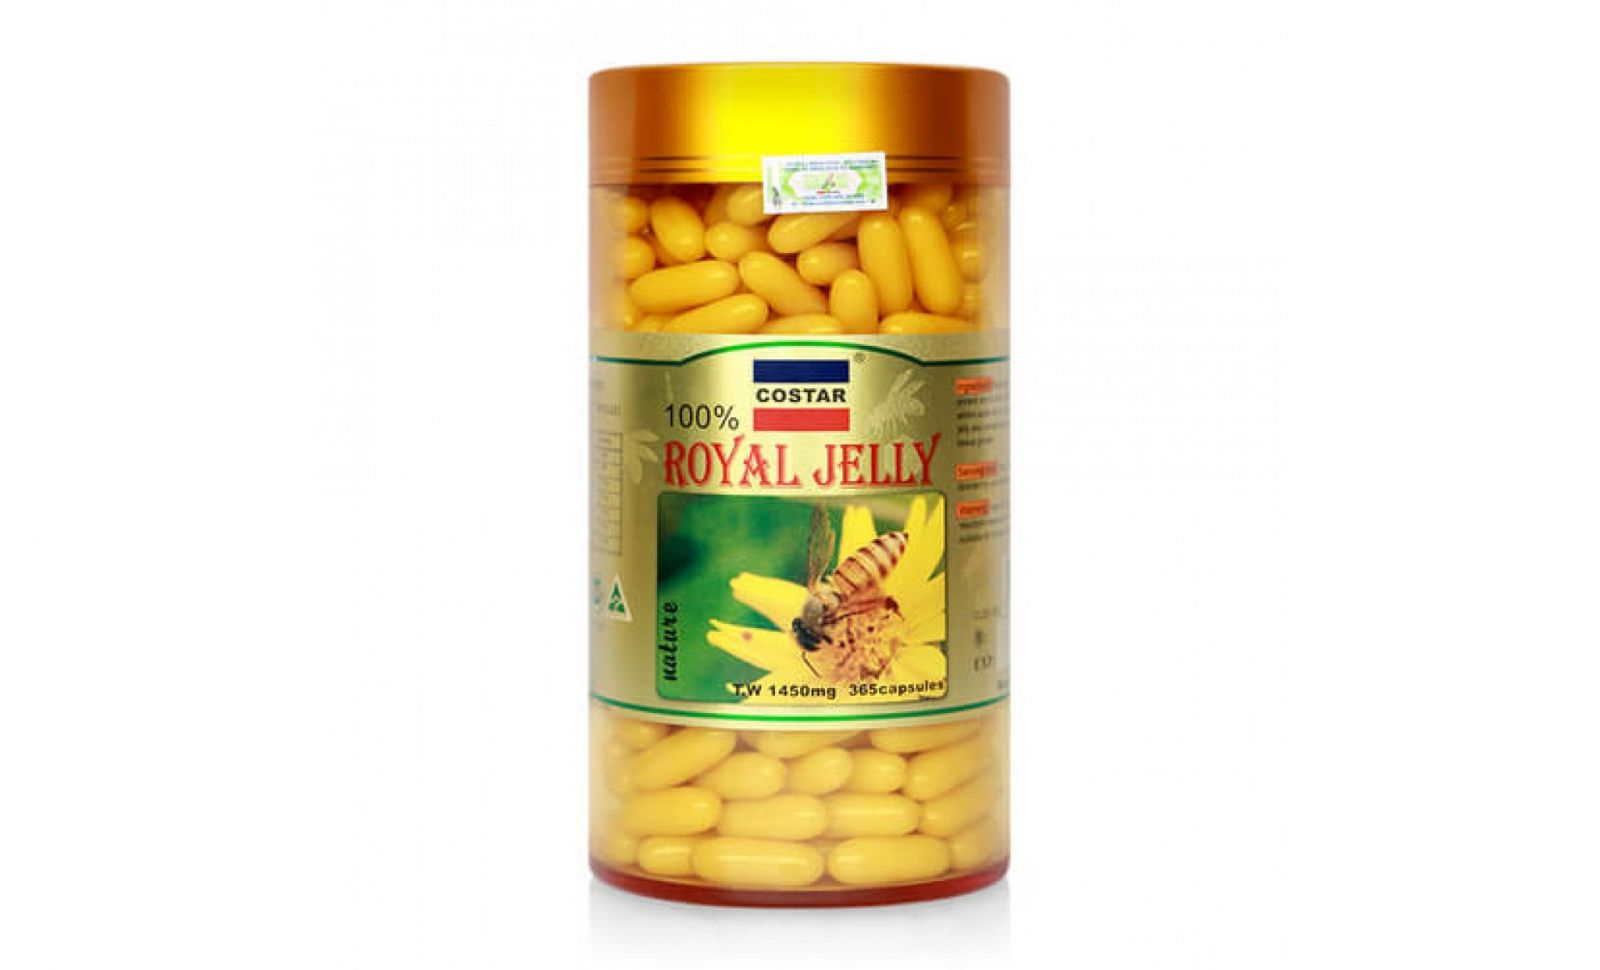 Sua-ong-chua-chong-lao-hoa-Royal-Jelly-Costar-1450mg